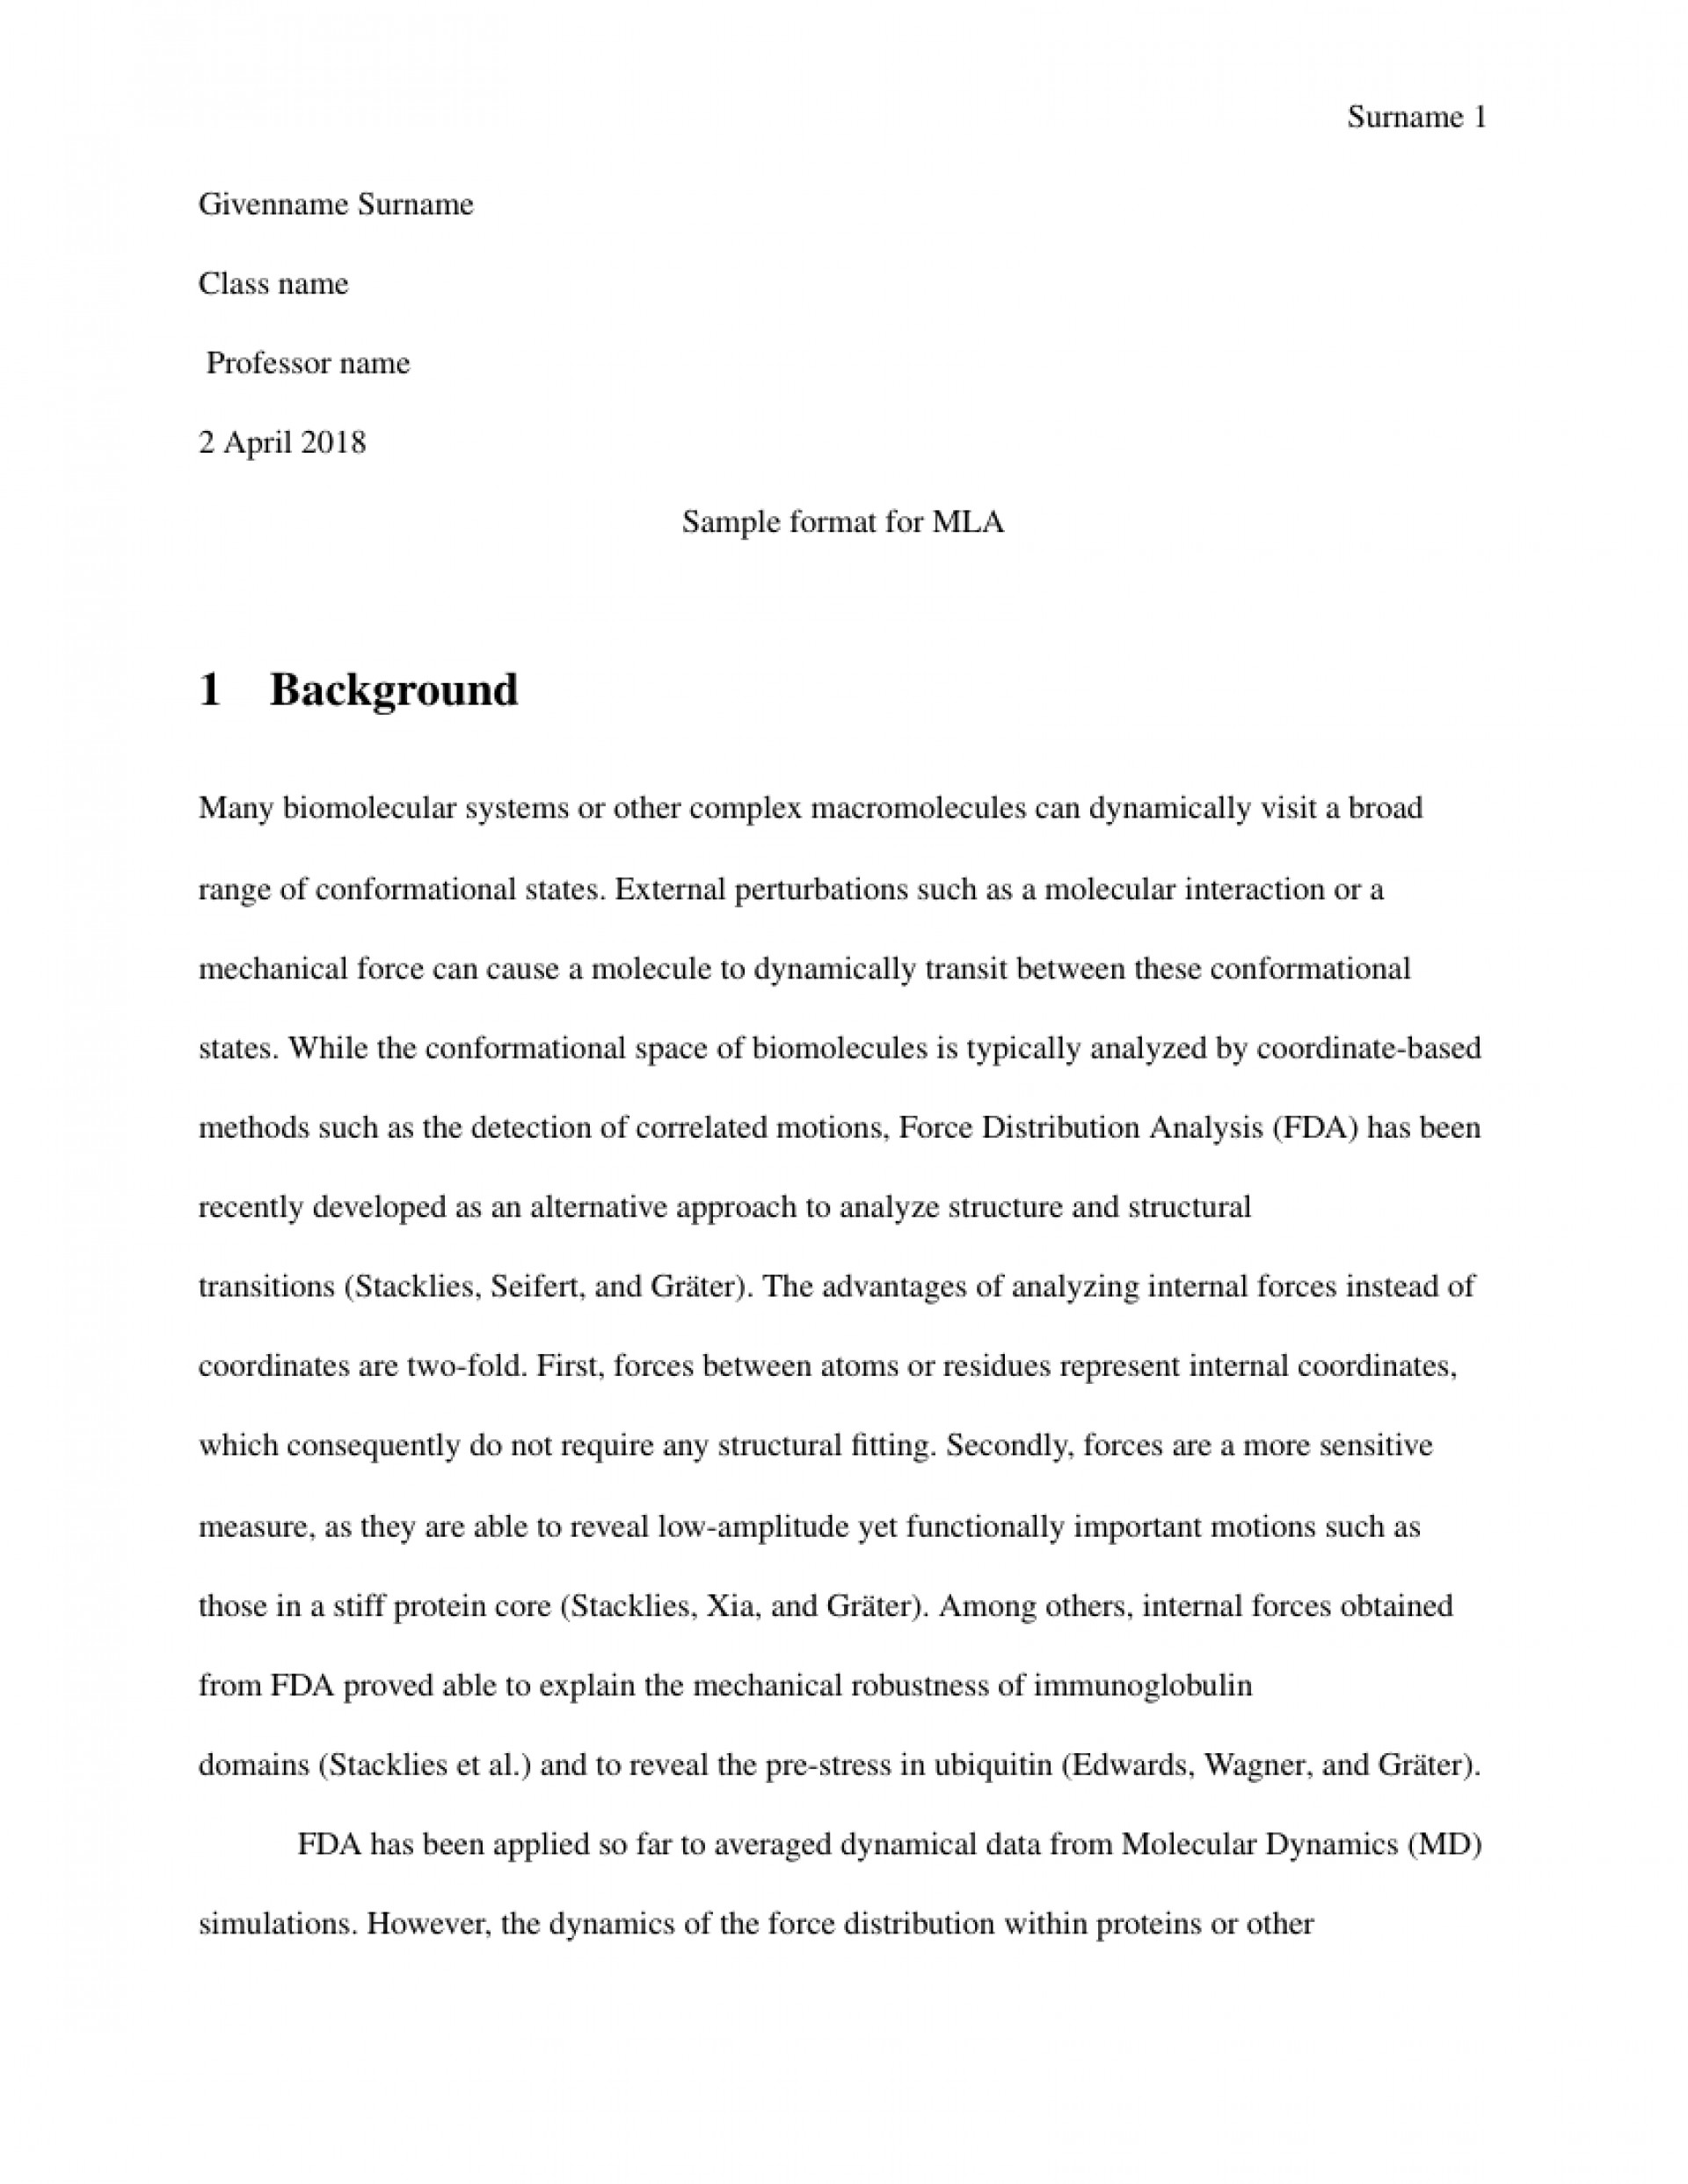 012 Article Mla Research Paper Format Awesome Template Outline Example 1920